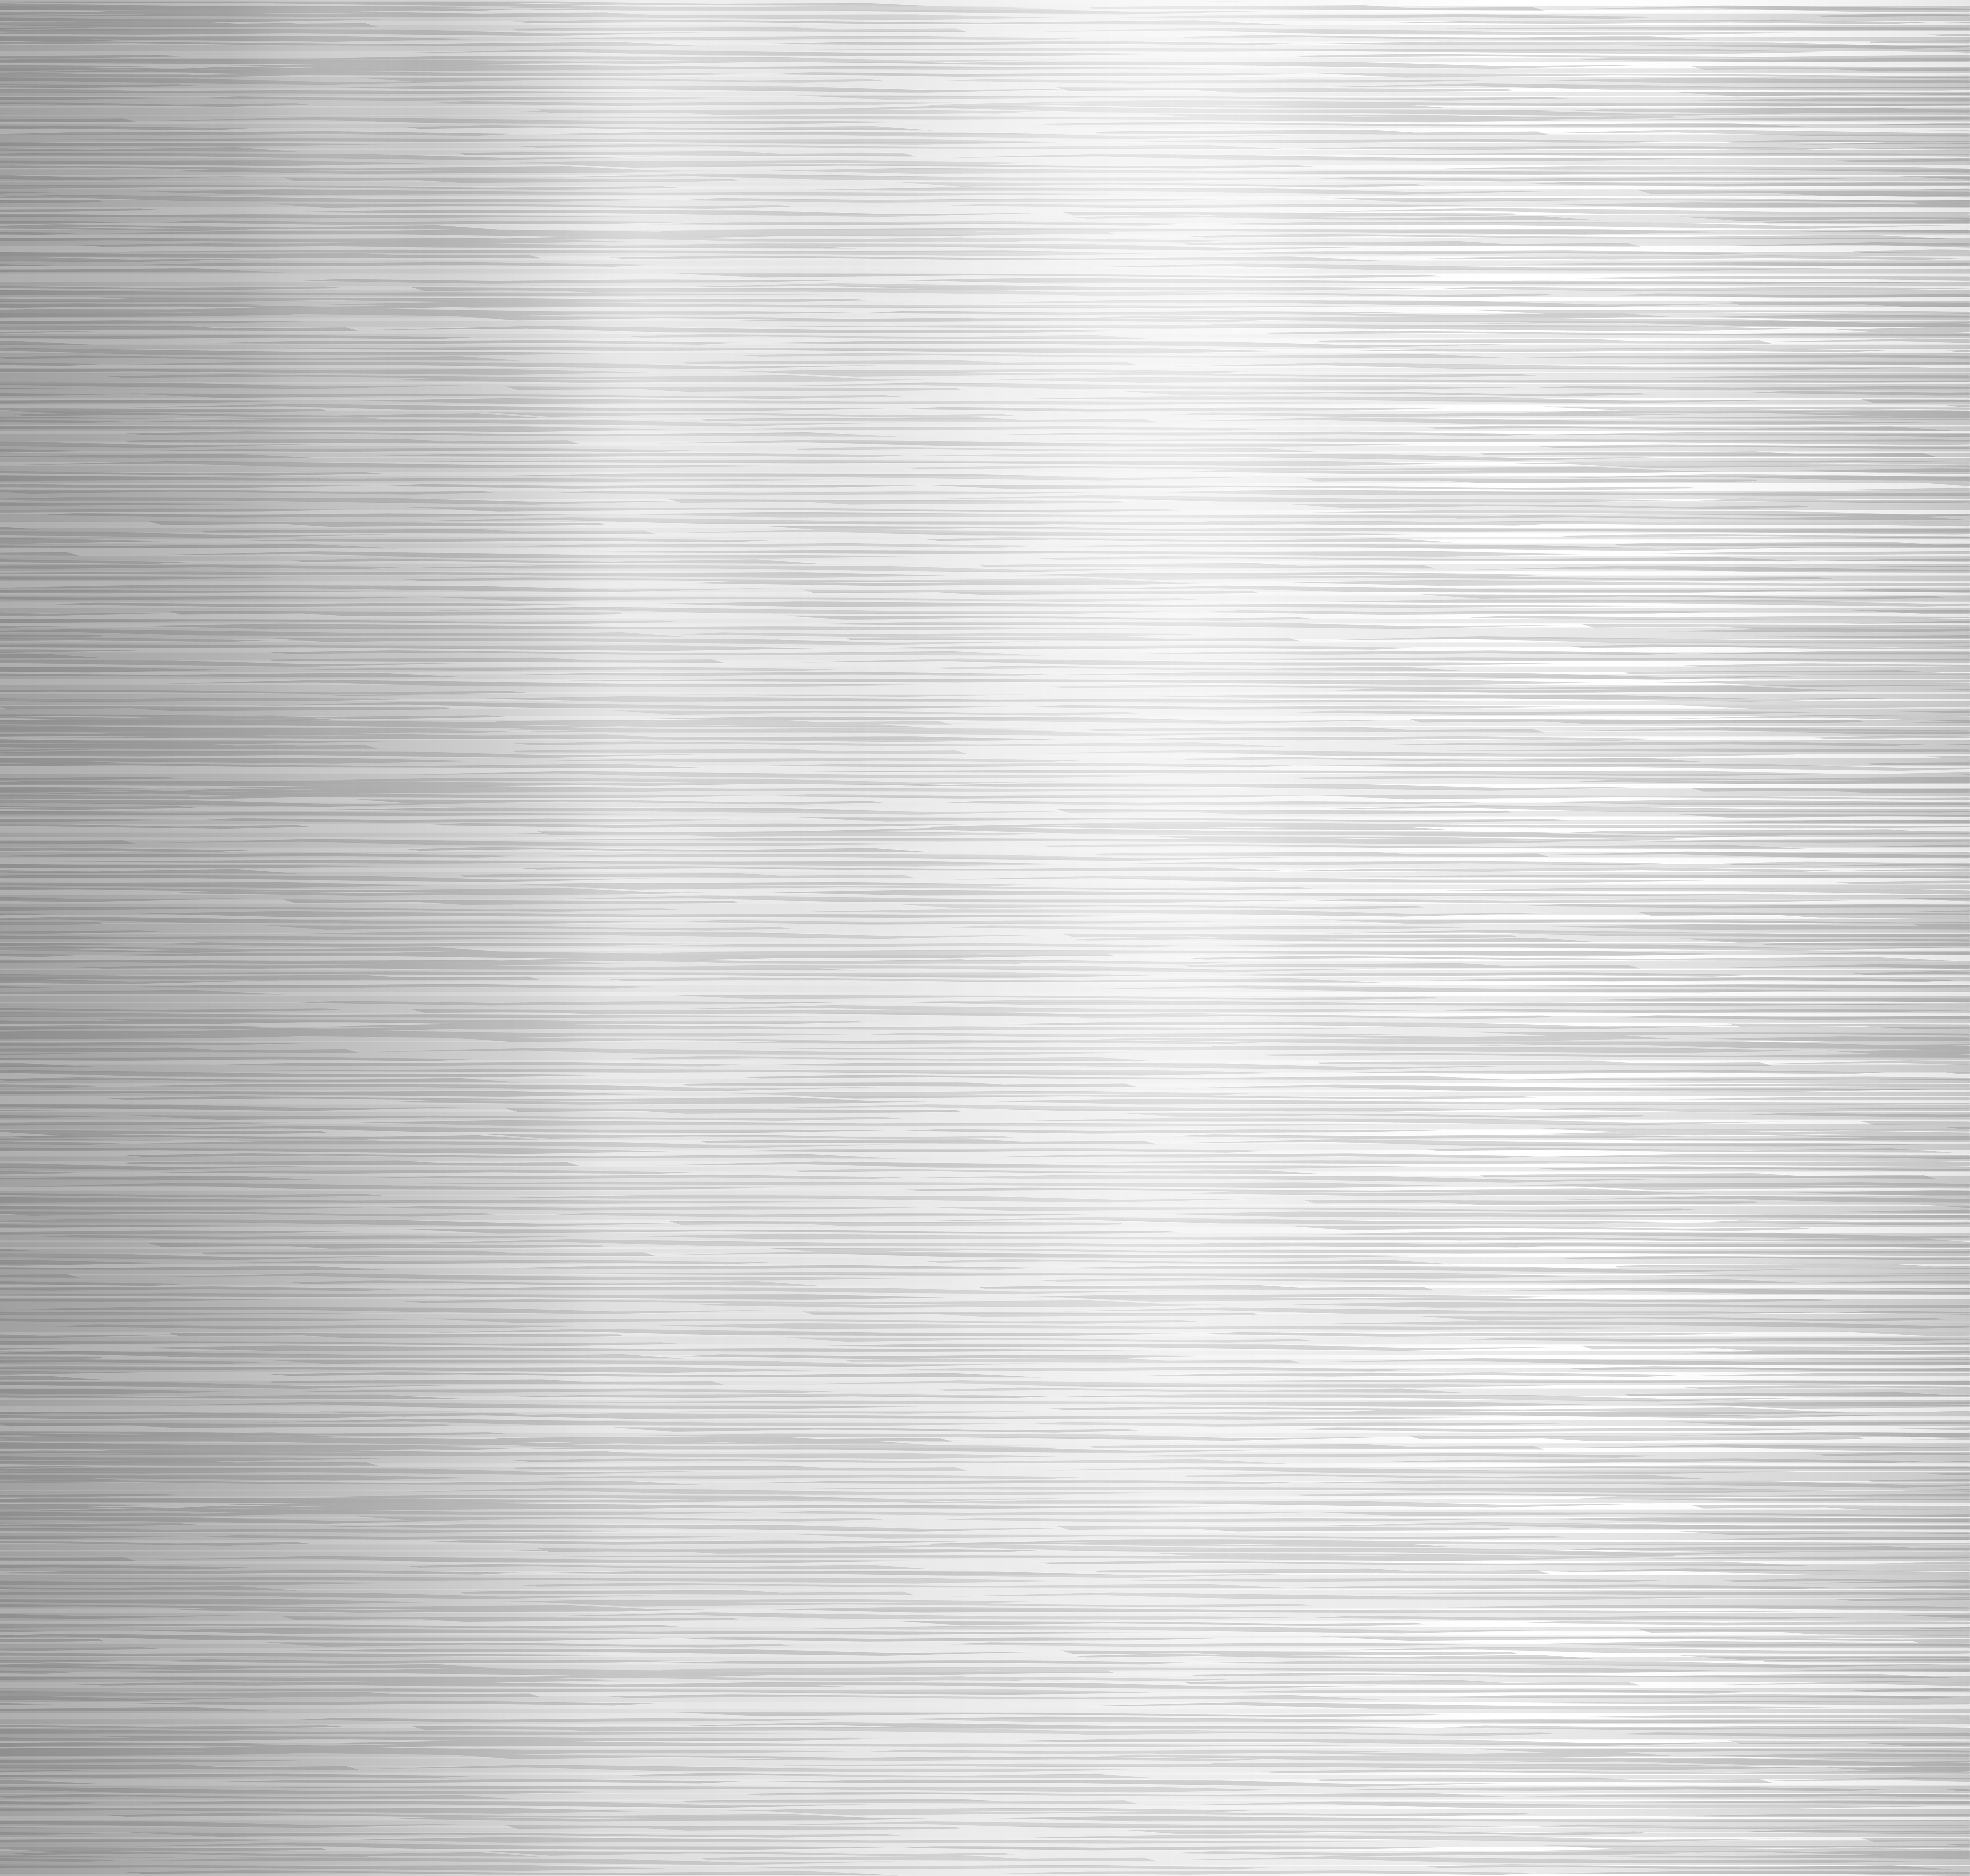 Silver Background | Gallery Yopriceville - High-Quality Images and ... clip art royalty free